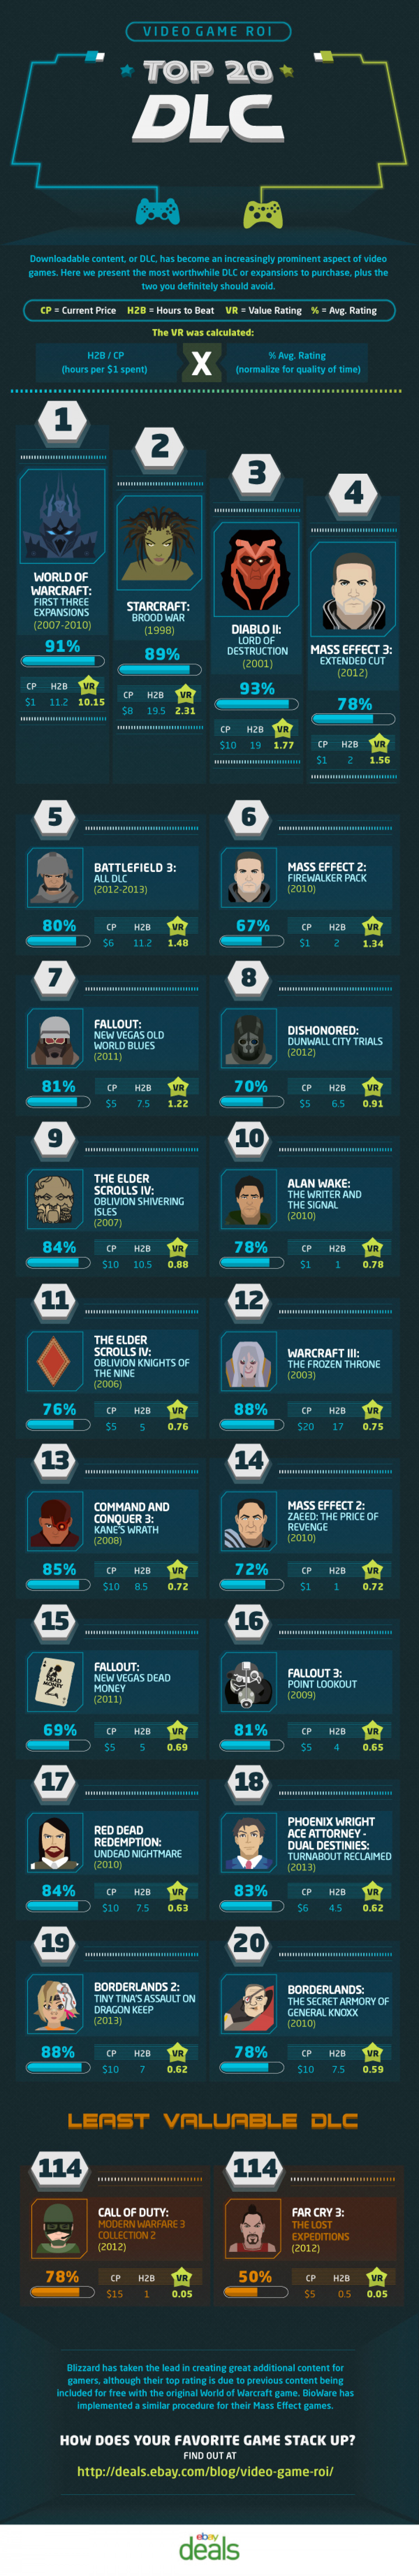 Top 20 DLC Infographic